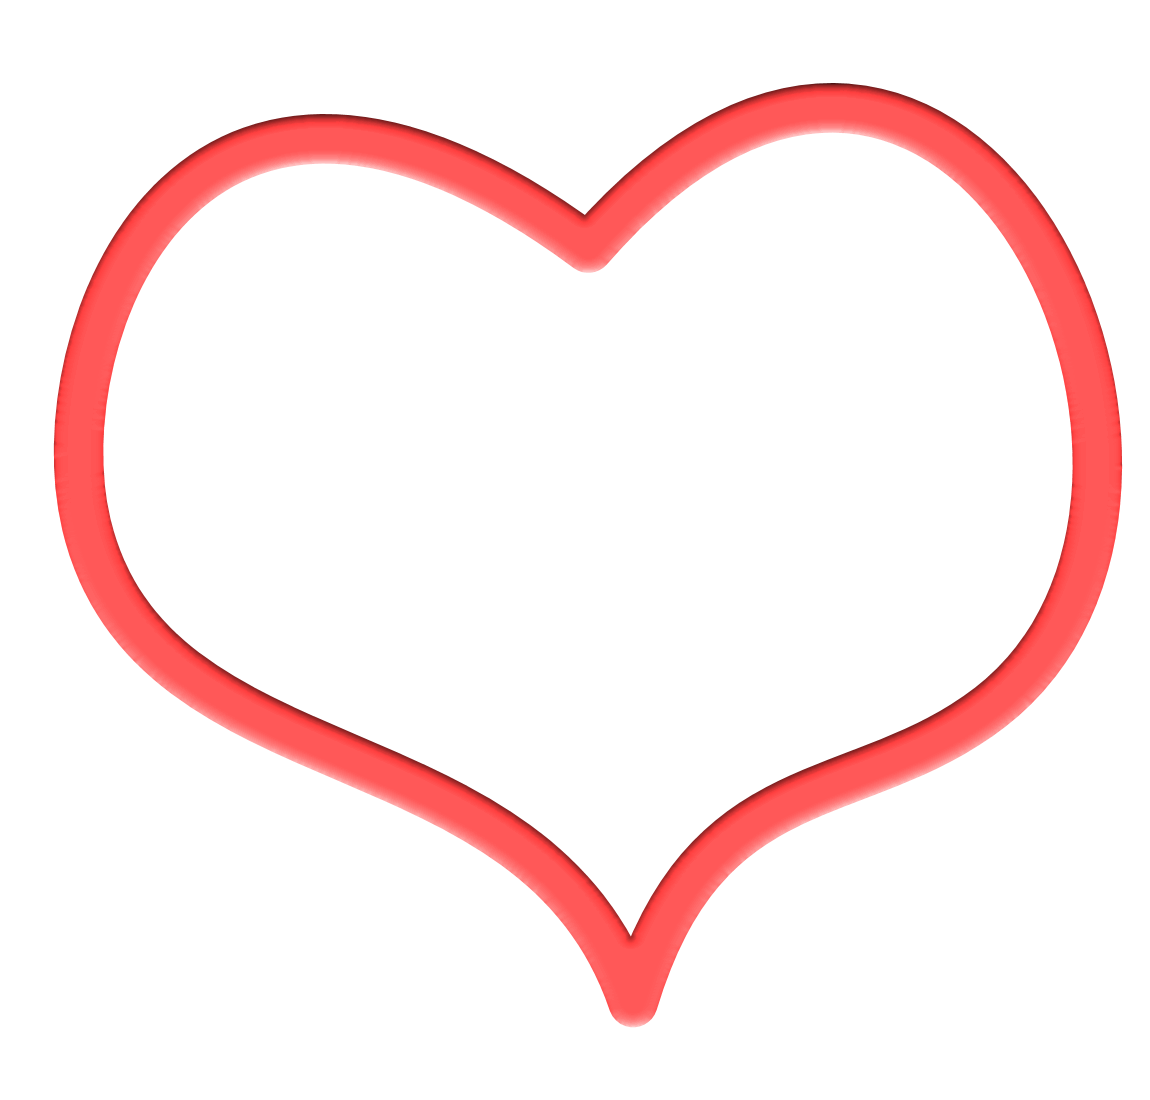 Heart Clipart Frame | Free download best Heart Clipart Frame on ...